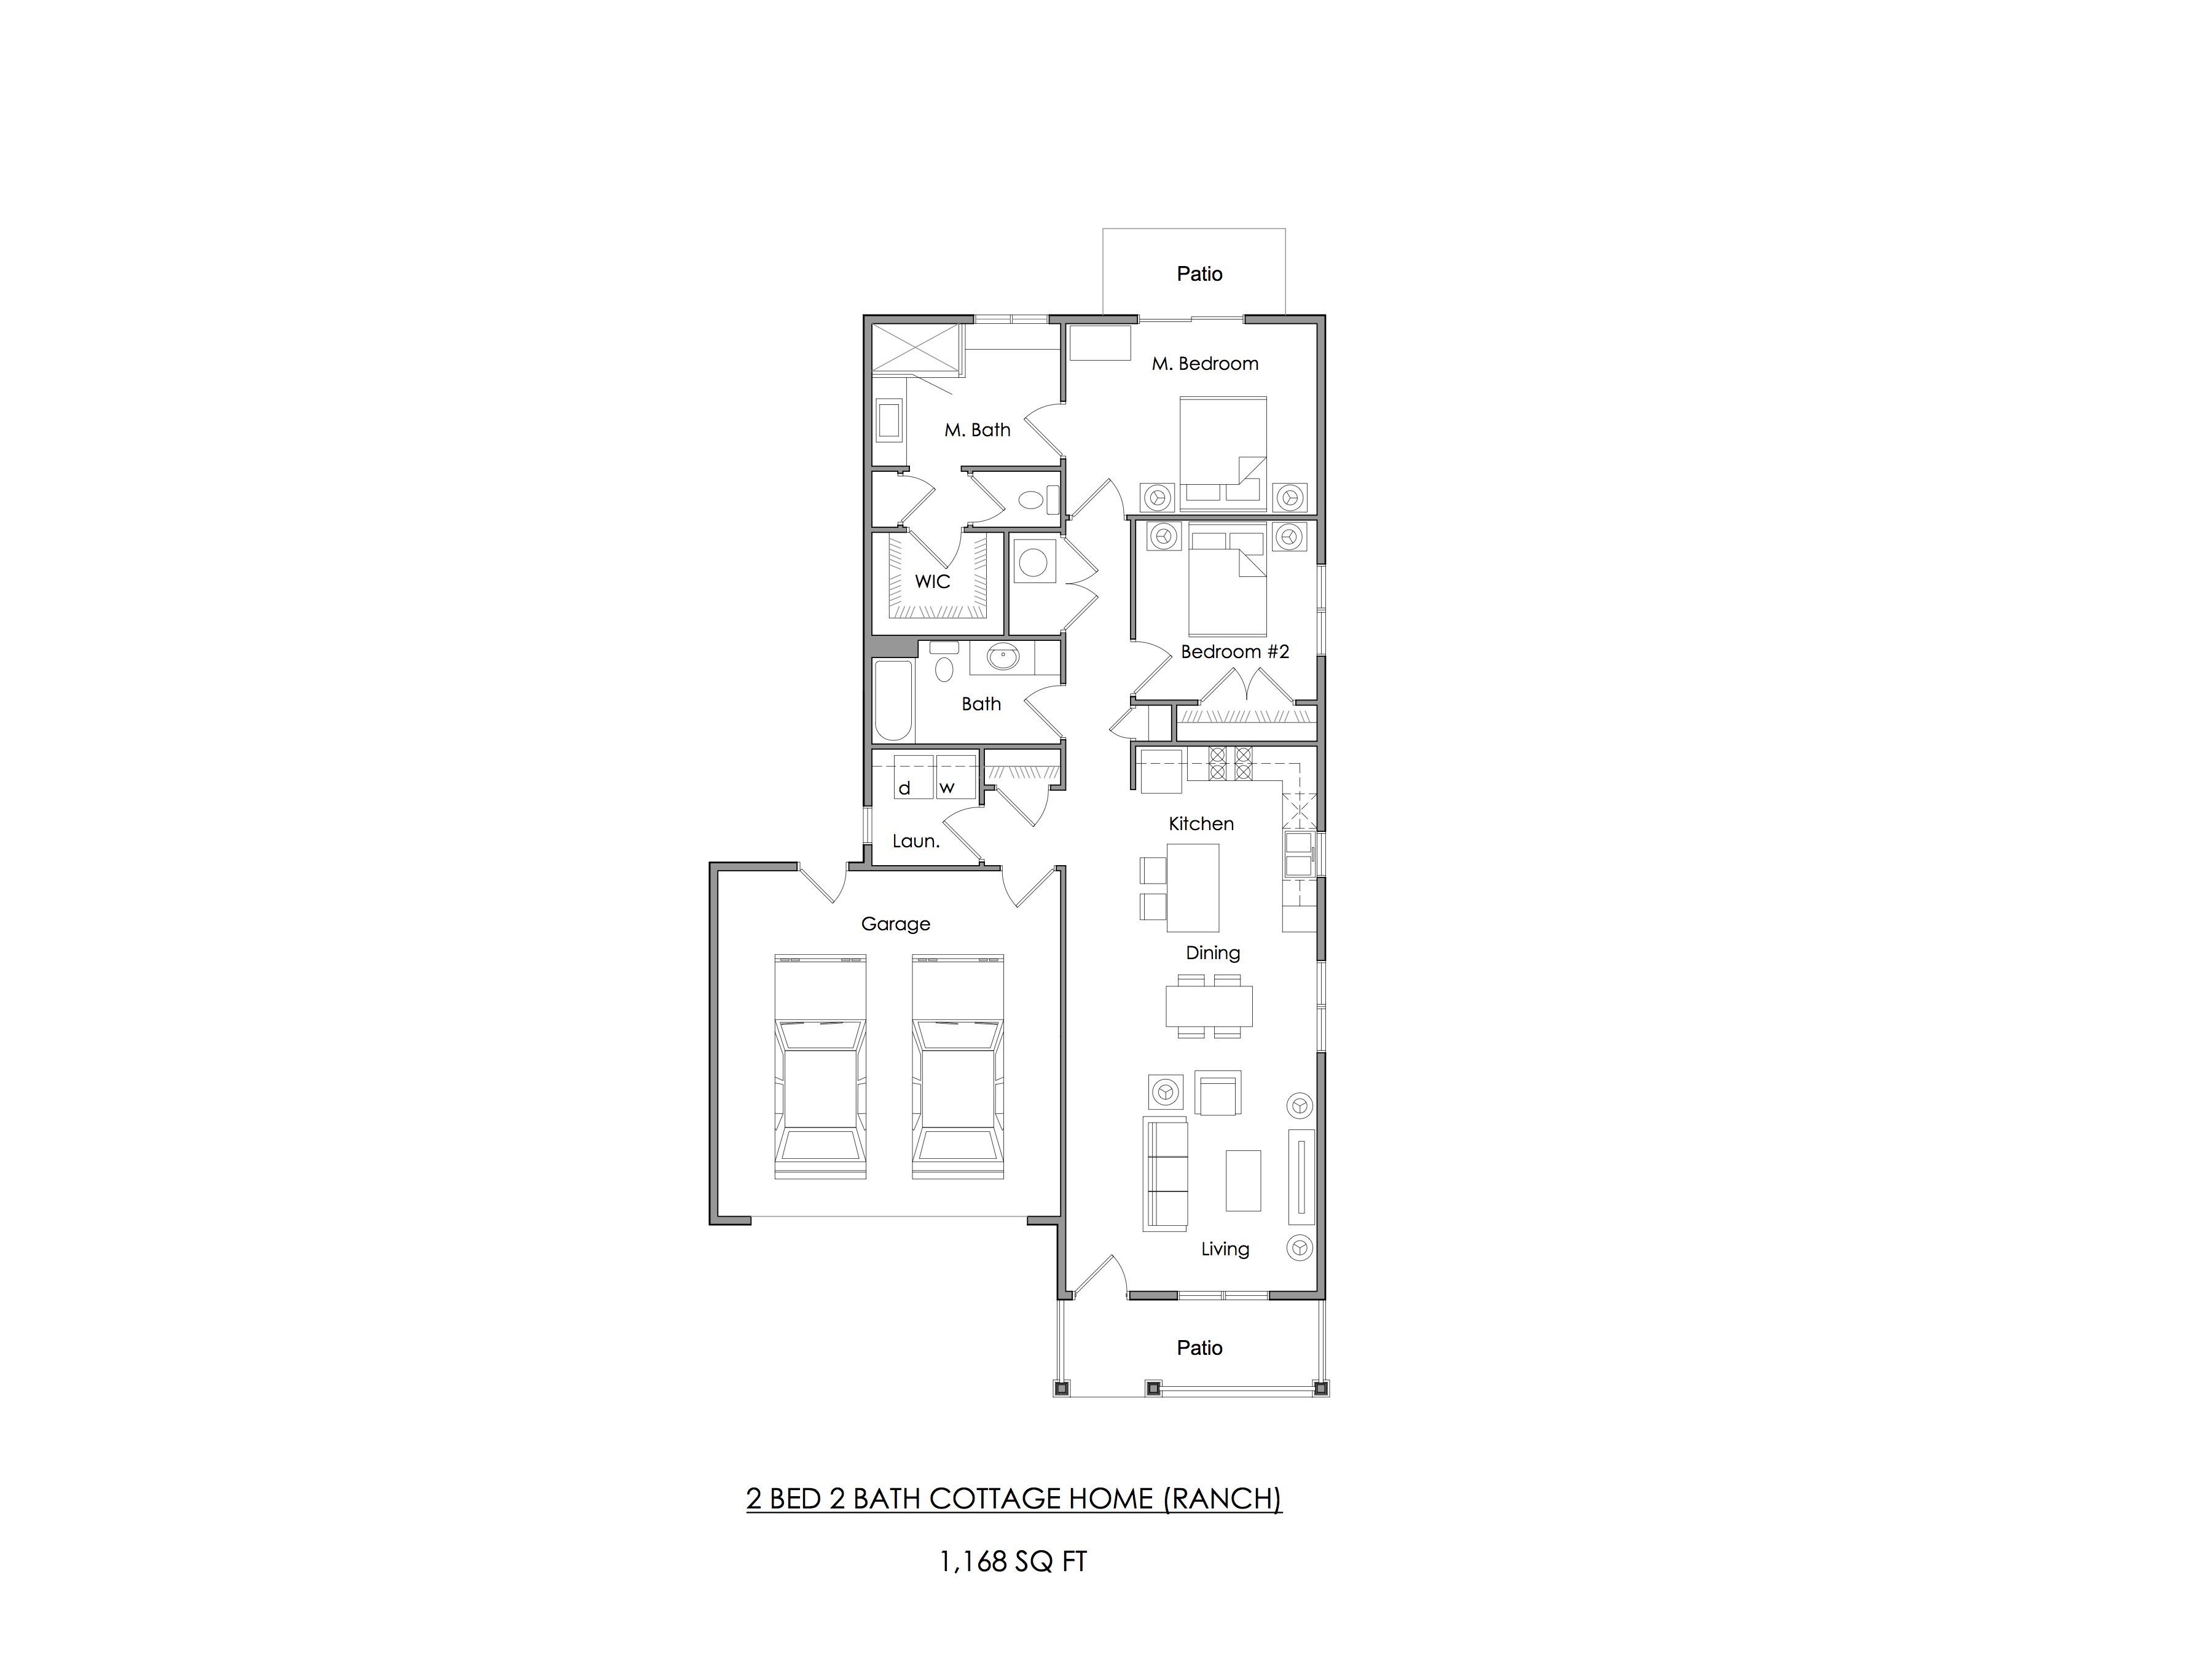 Two bedroom Cottage Home floor plan (ranch) — 1,168 sq ft.